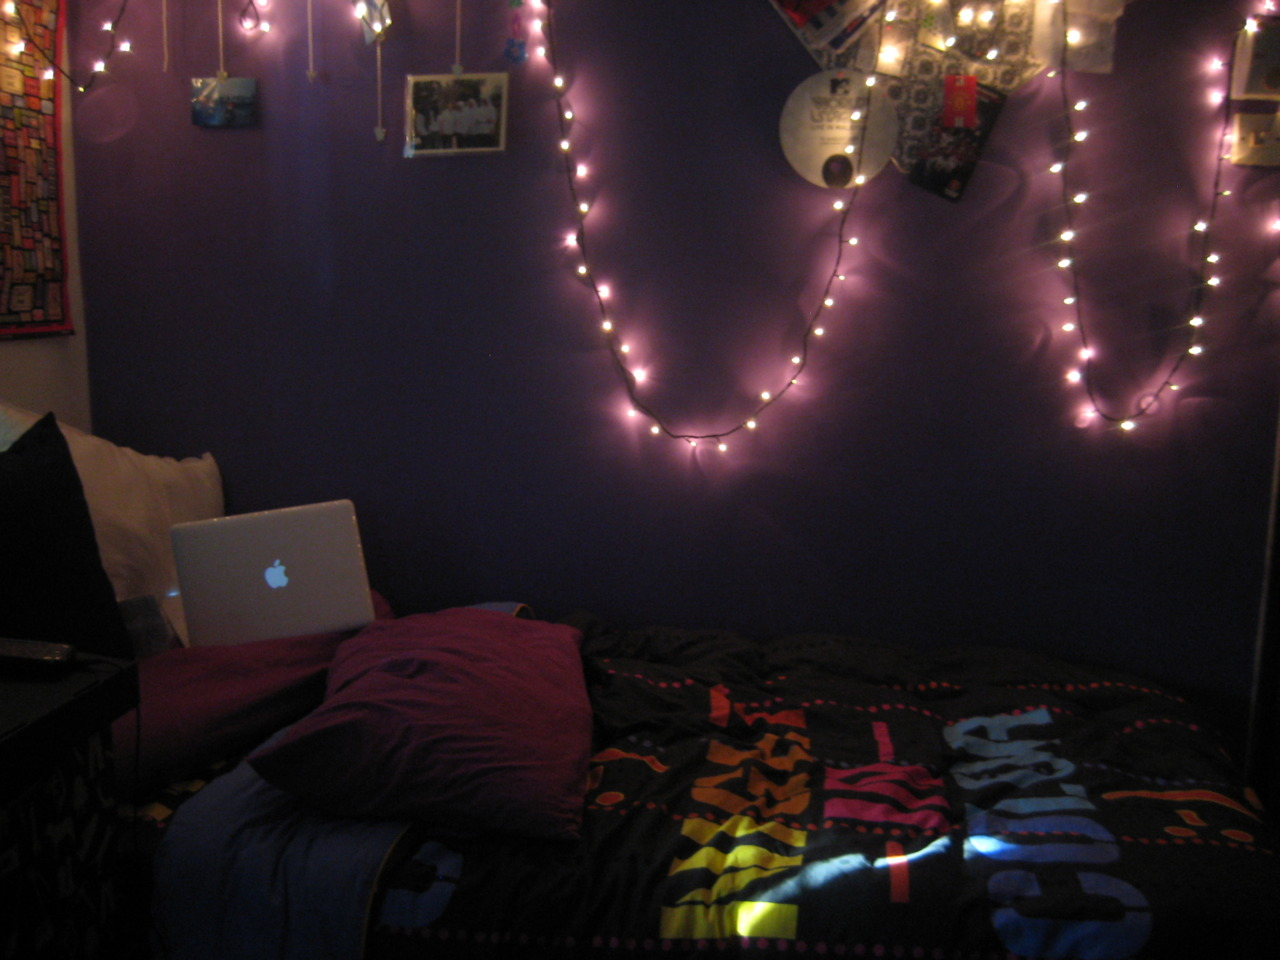 Good night we heart it bedroom and lights for Bedroom night light